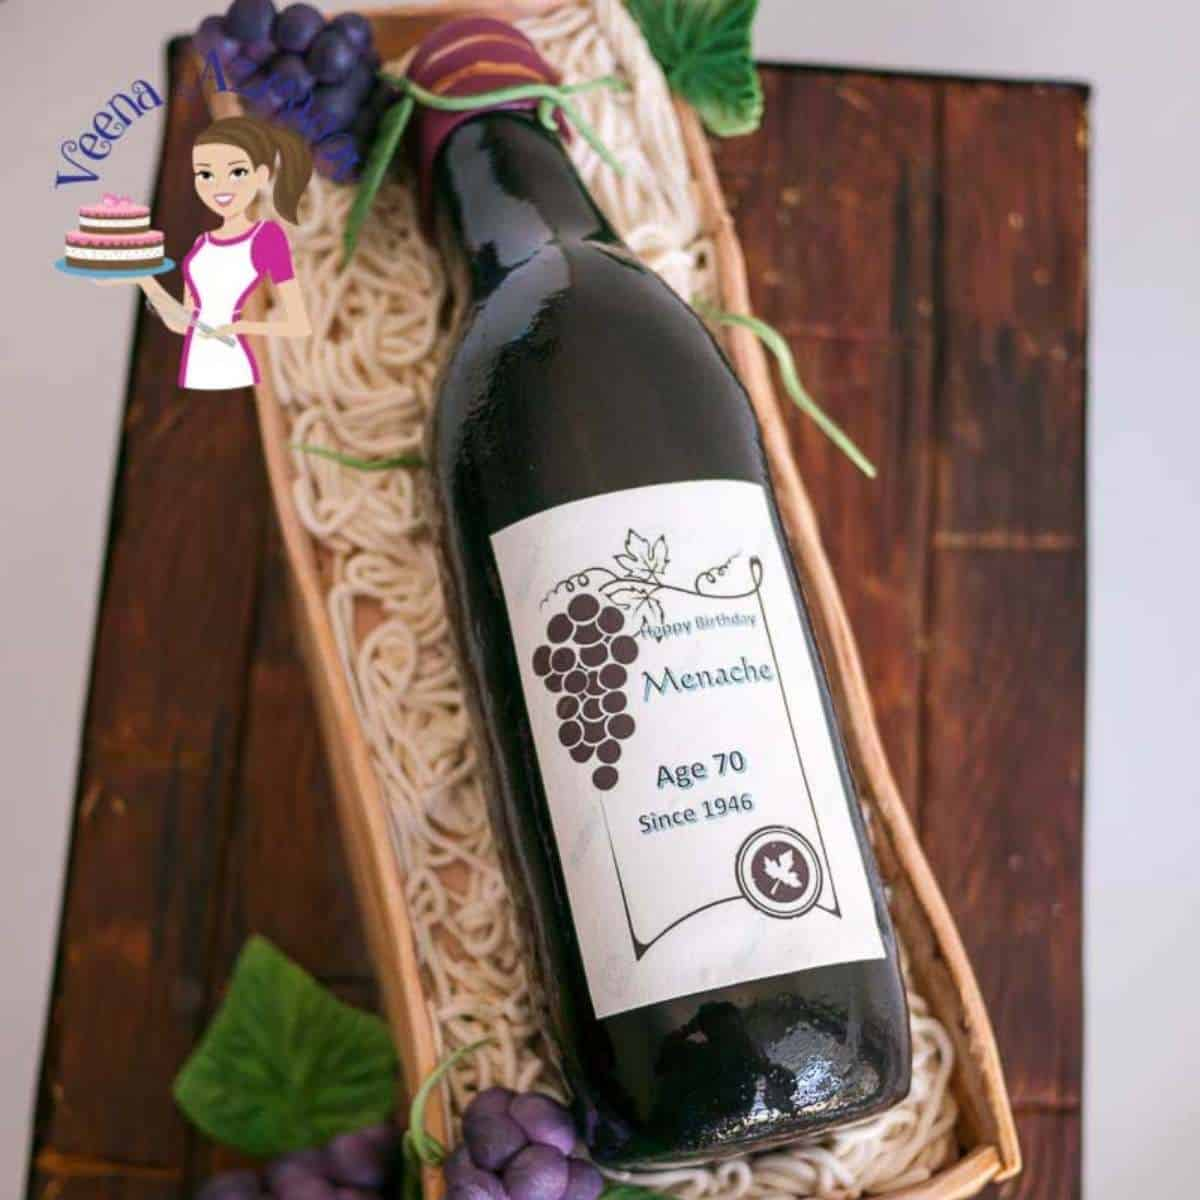 Fondant frosted novelty cake wine bottle in a crate on a cake board.